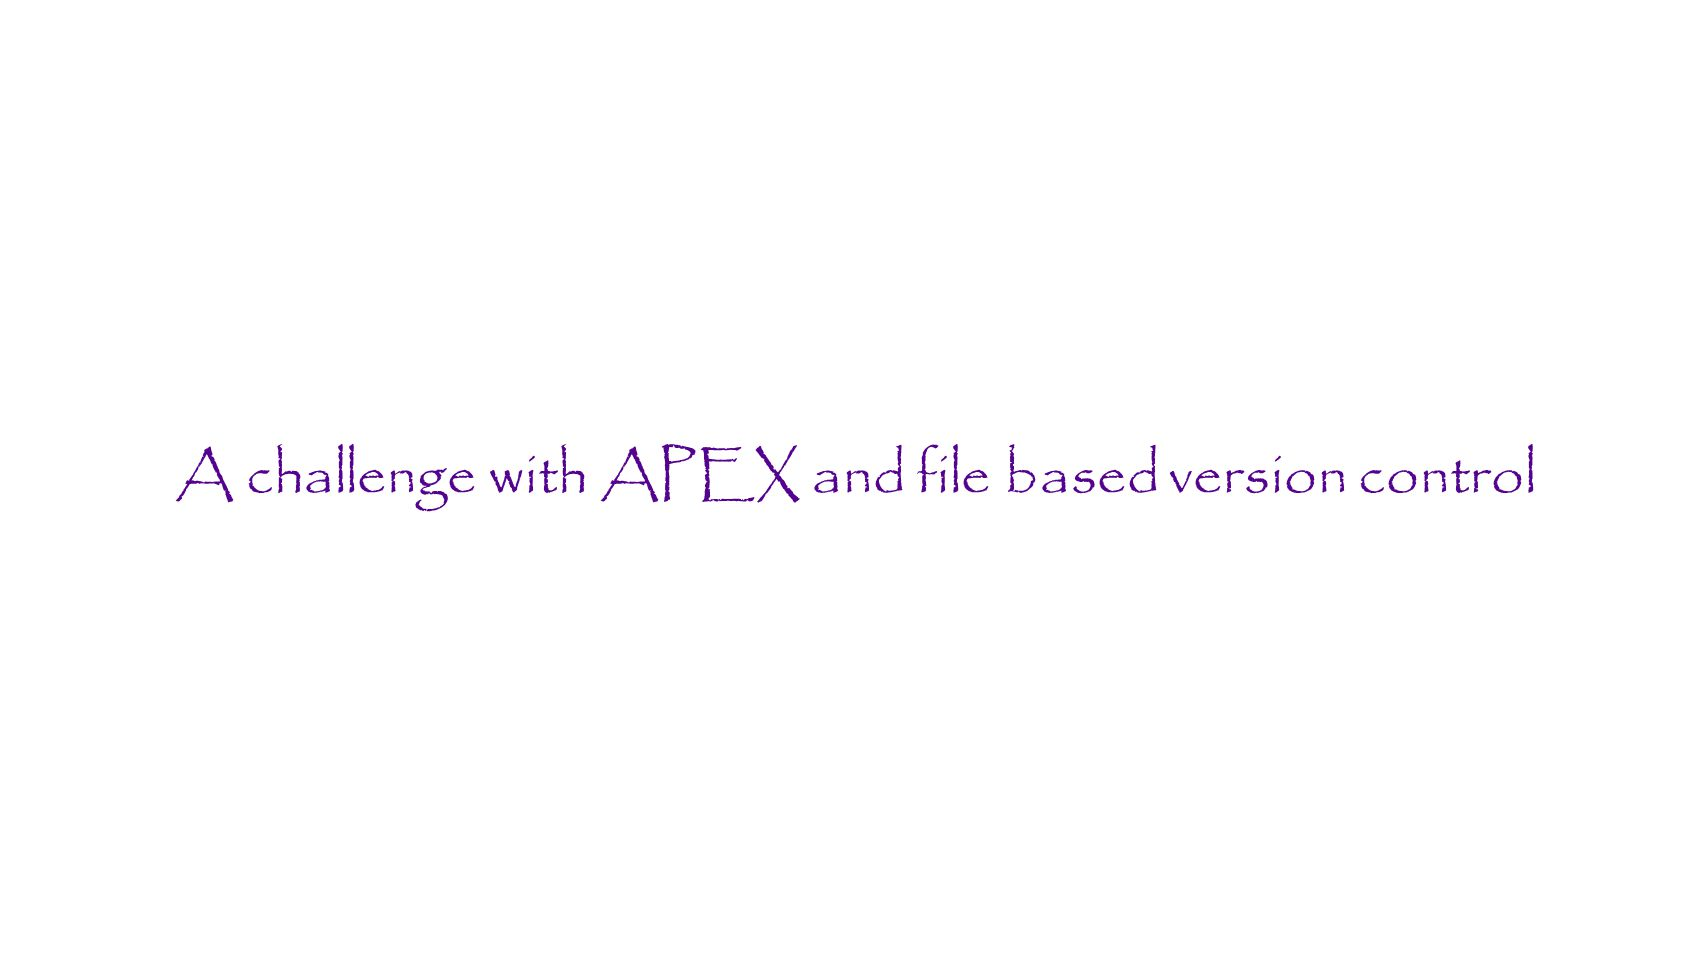 A challenge with APEX and file based version control